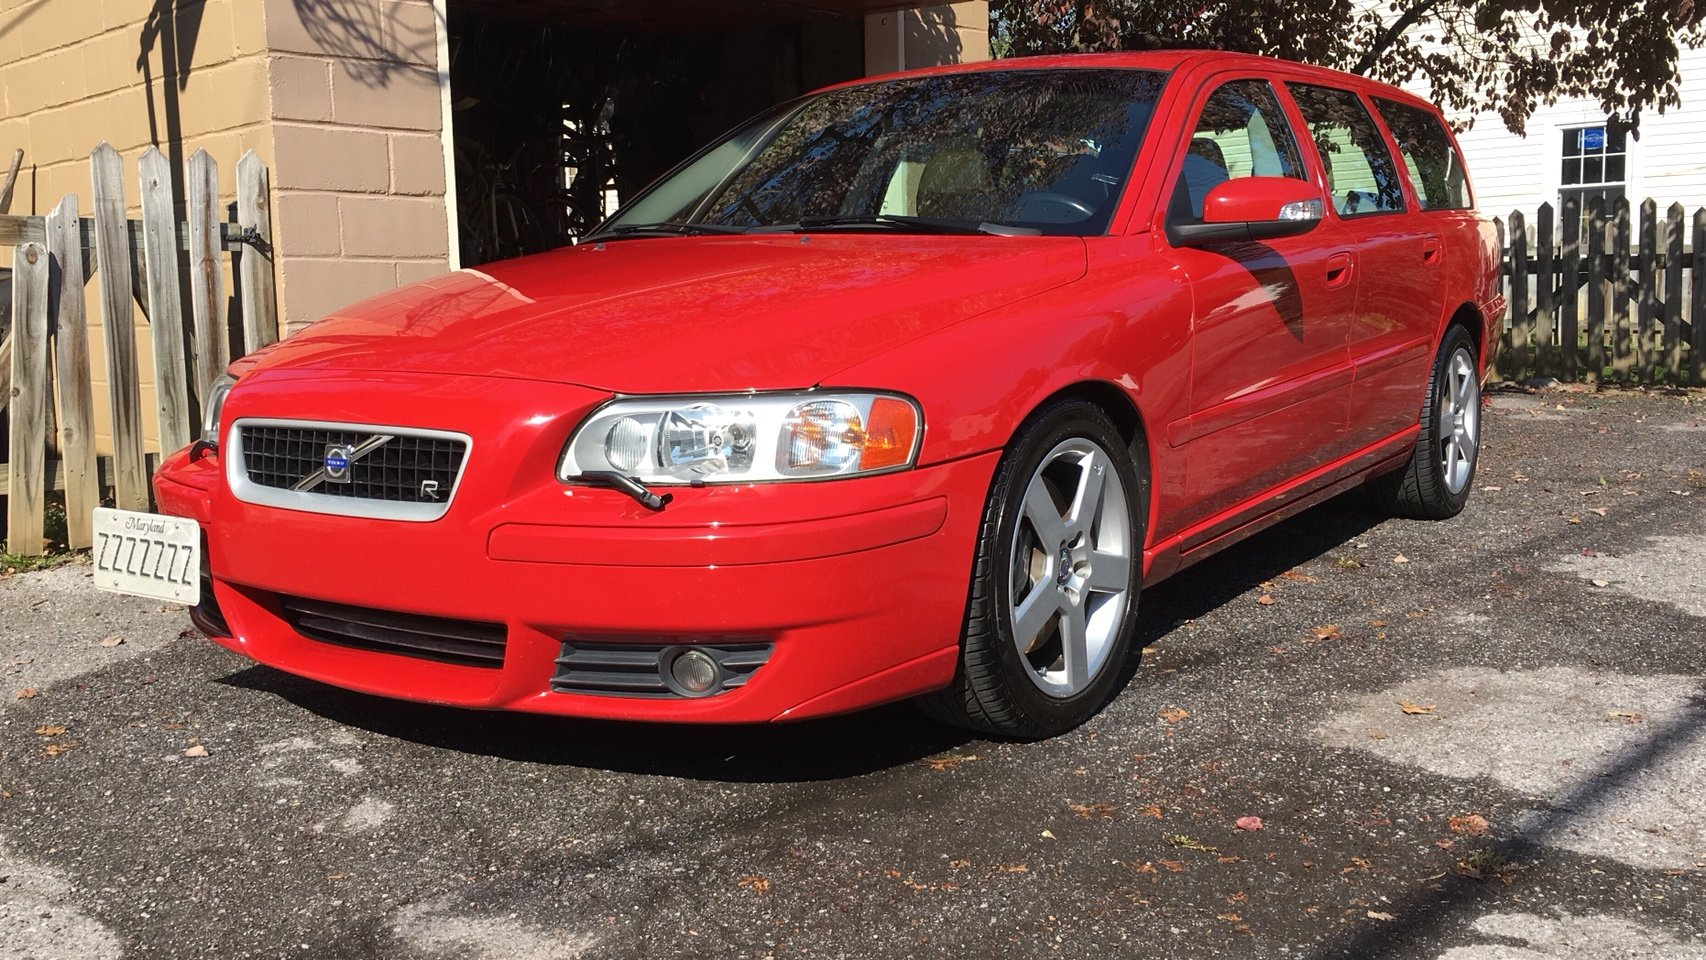 2007 V70r Passion Red Now Martynunya S Project Swedespeed Volvo Performance Forum